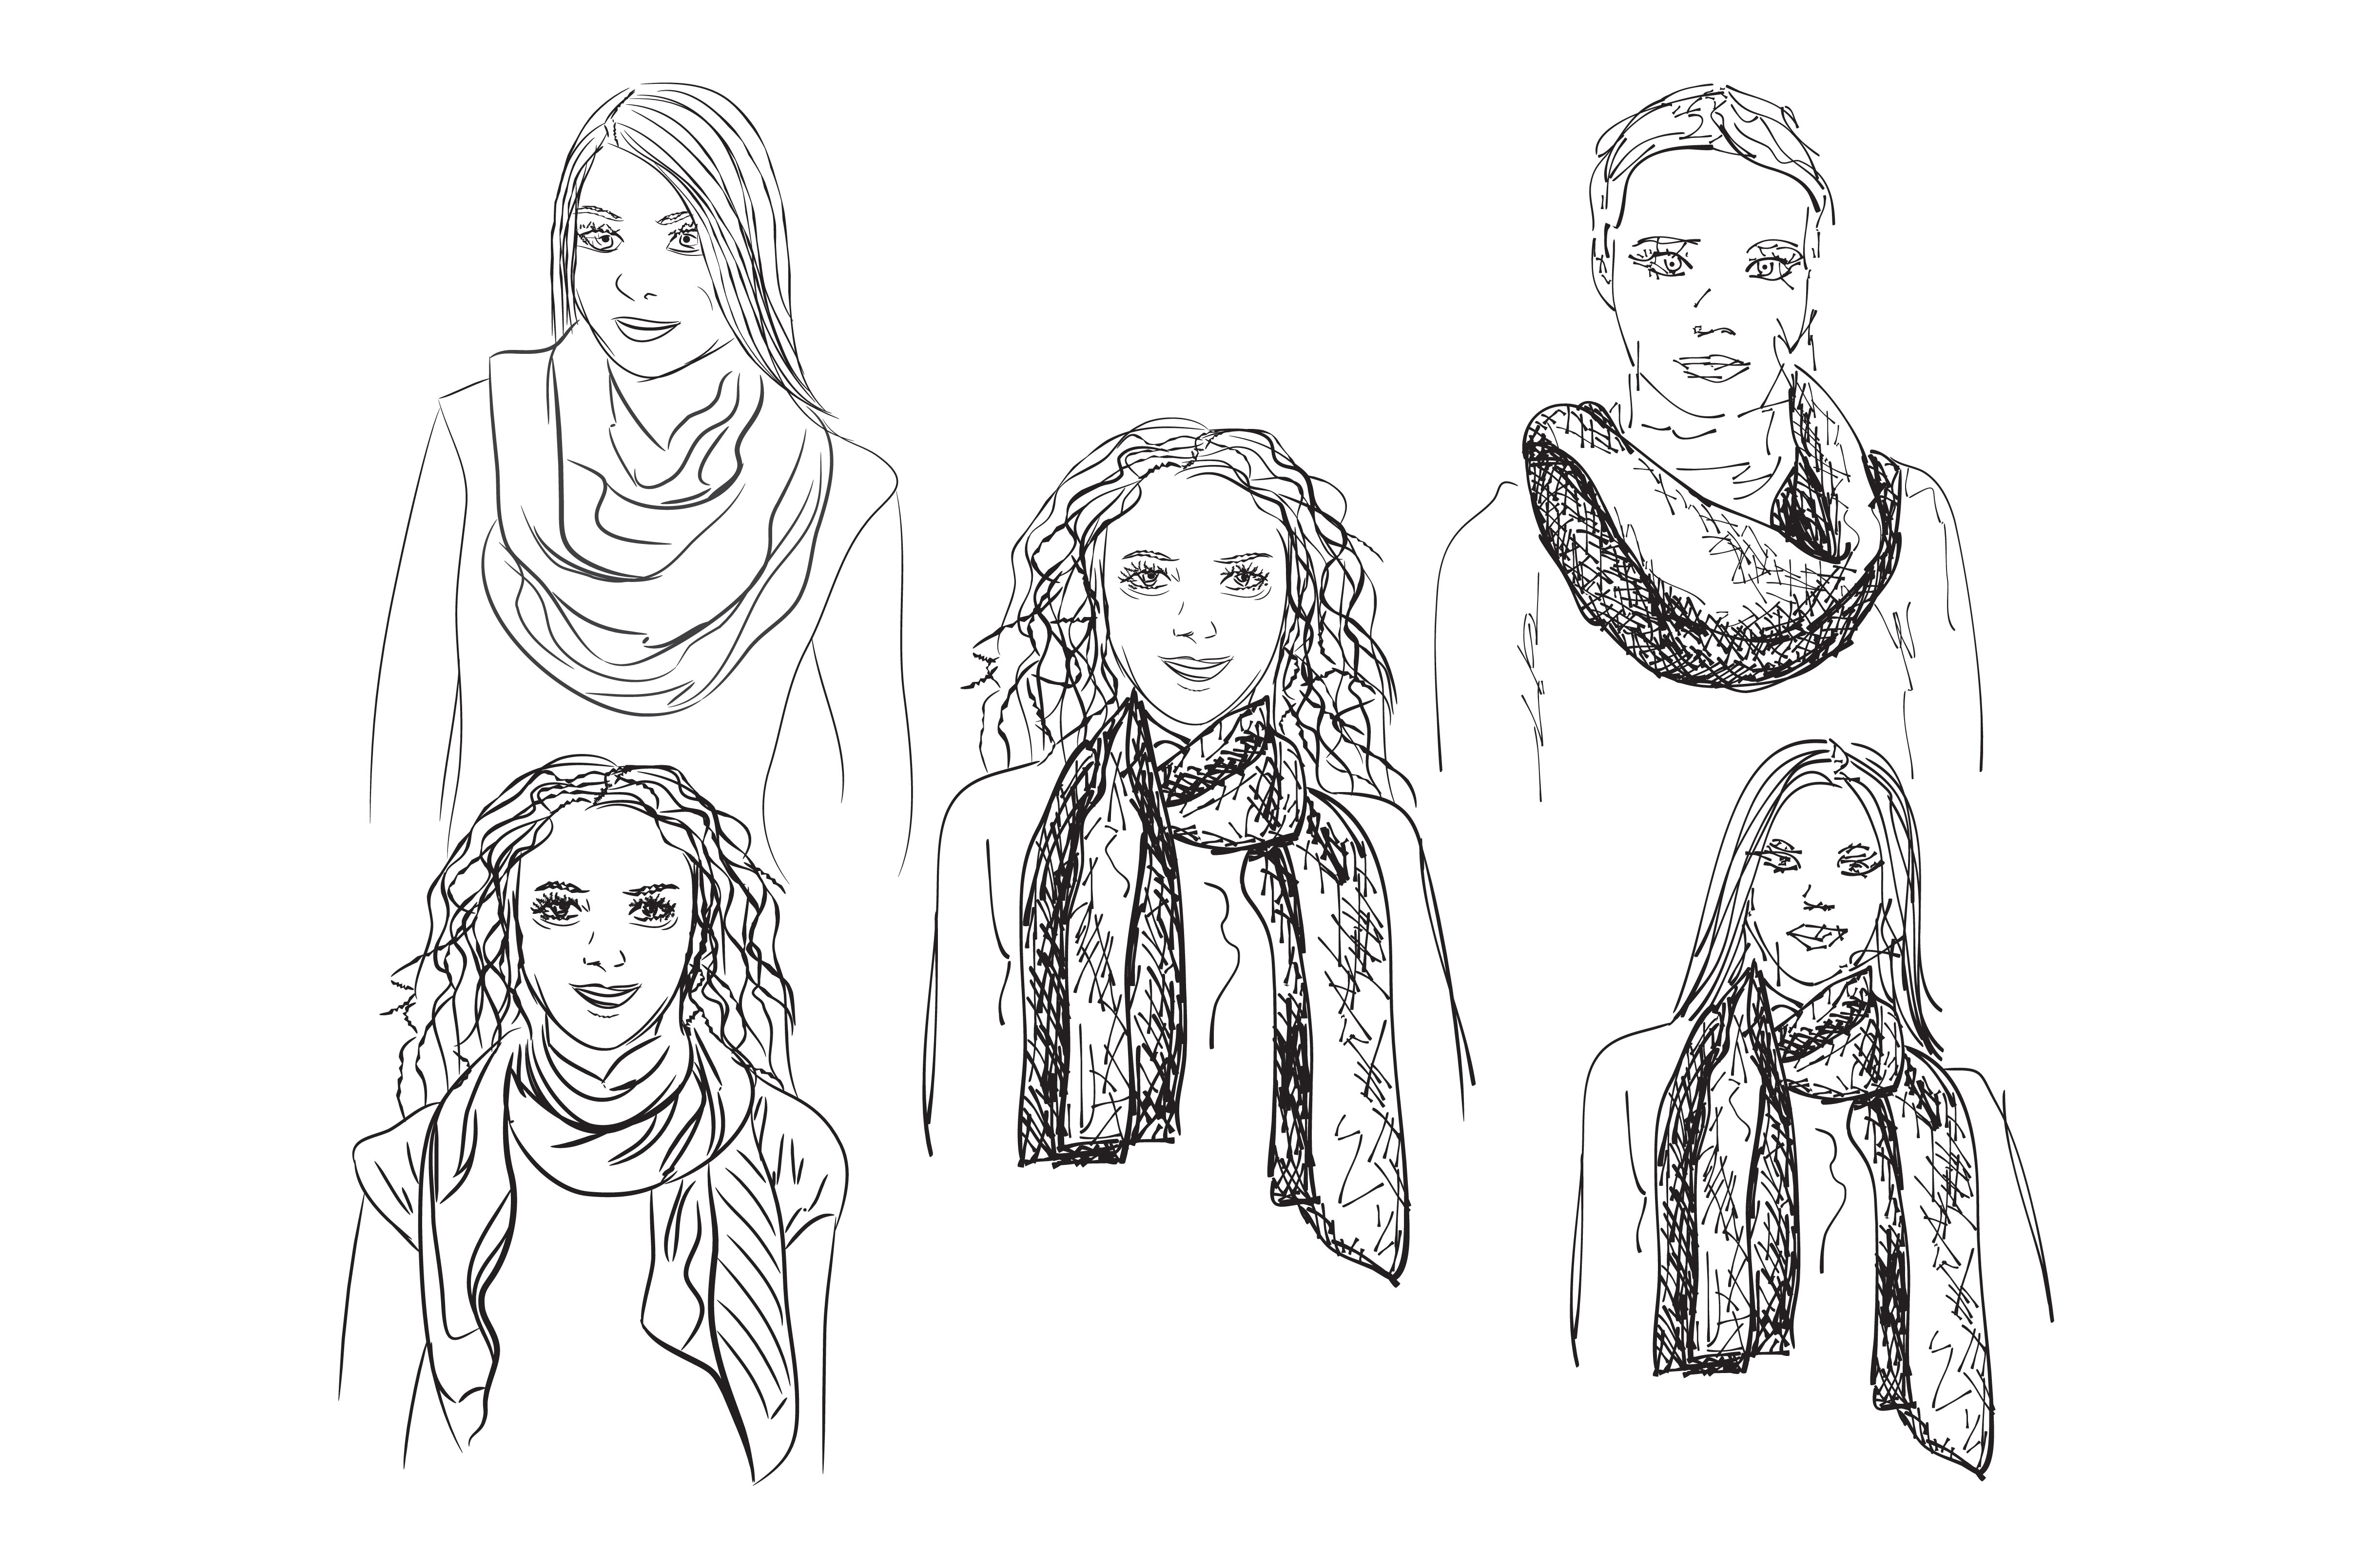 Girls in the scarf sketch ~ Illustrations ~ Creative Market